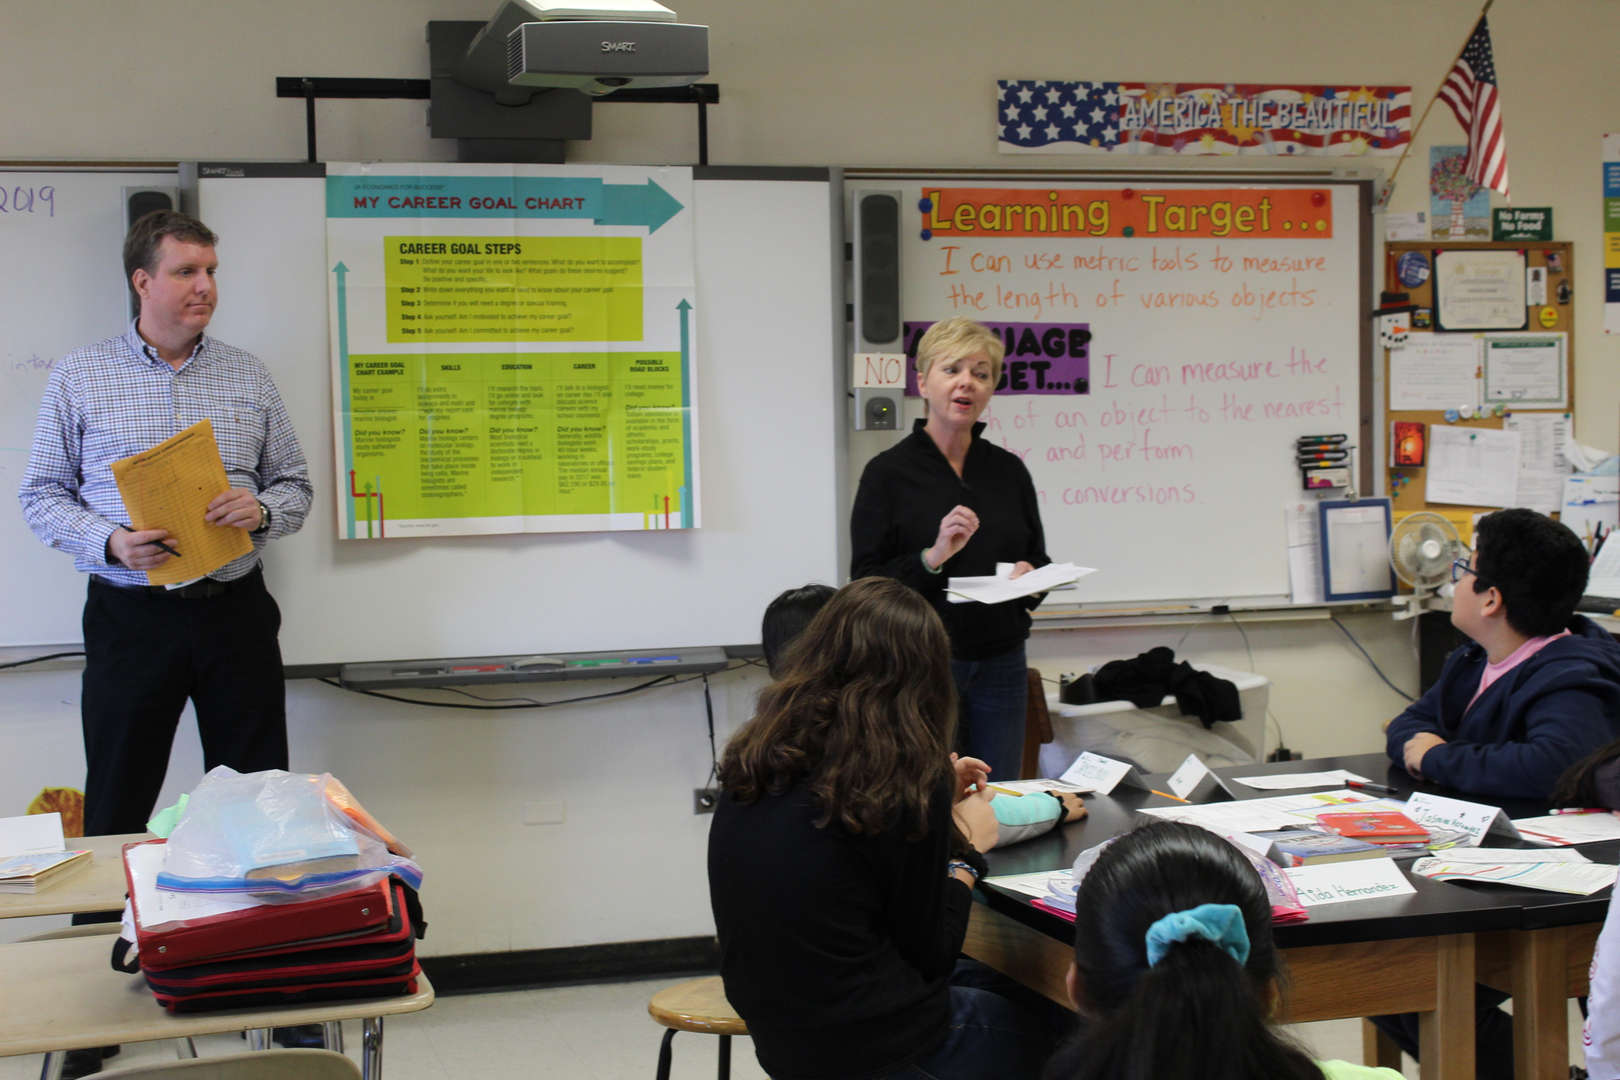 Adult volunteers speak with students in a classroom